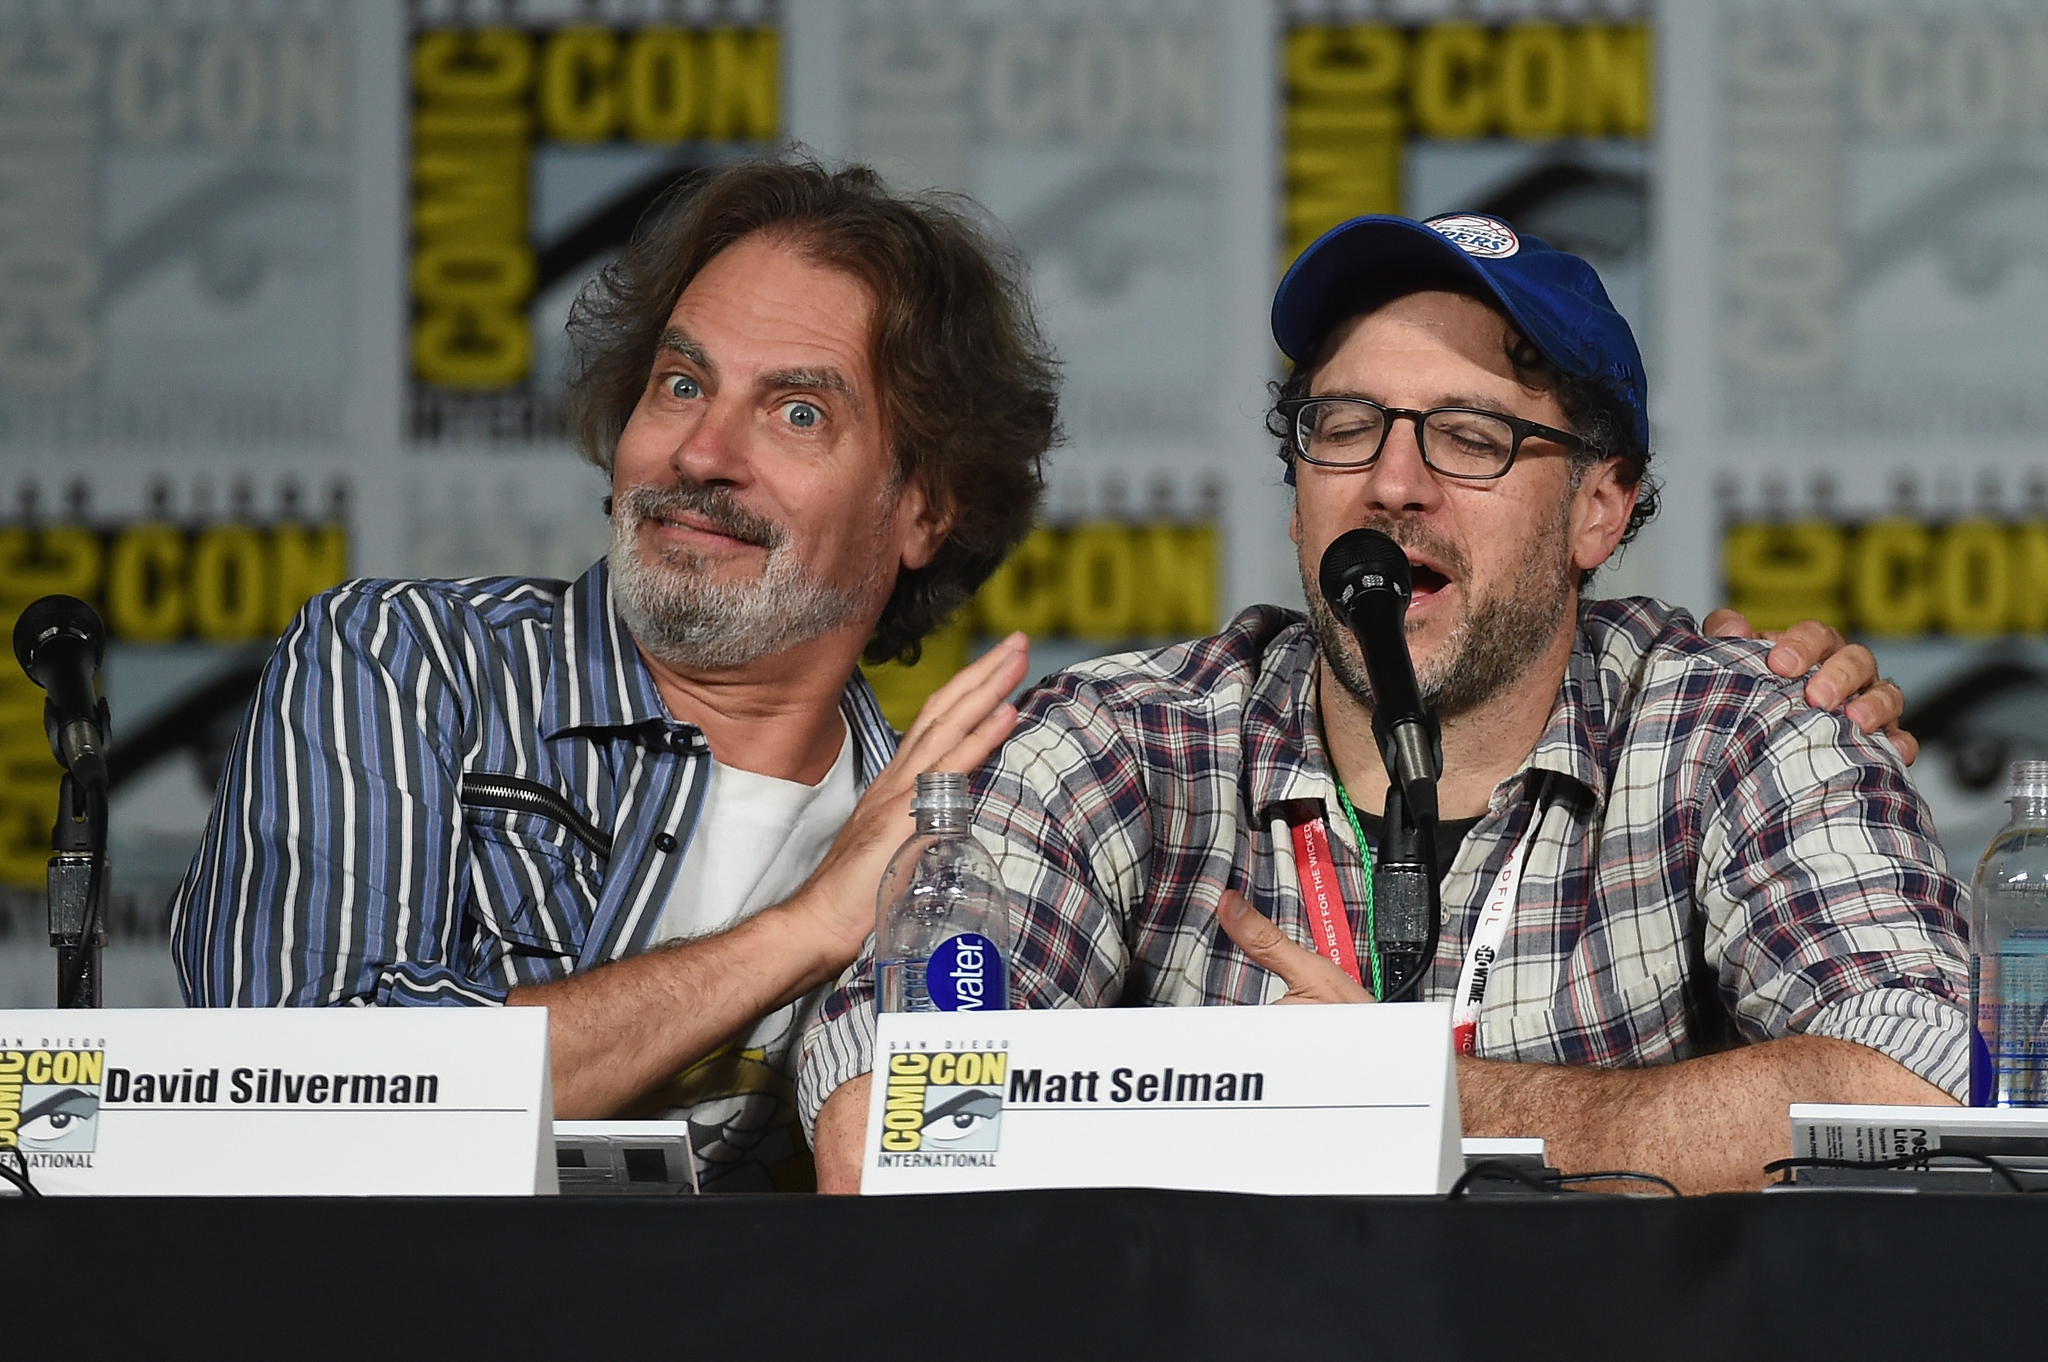 Matt Selman and David Silverman at an event for The Simpsons (1989)